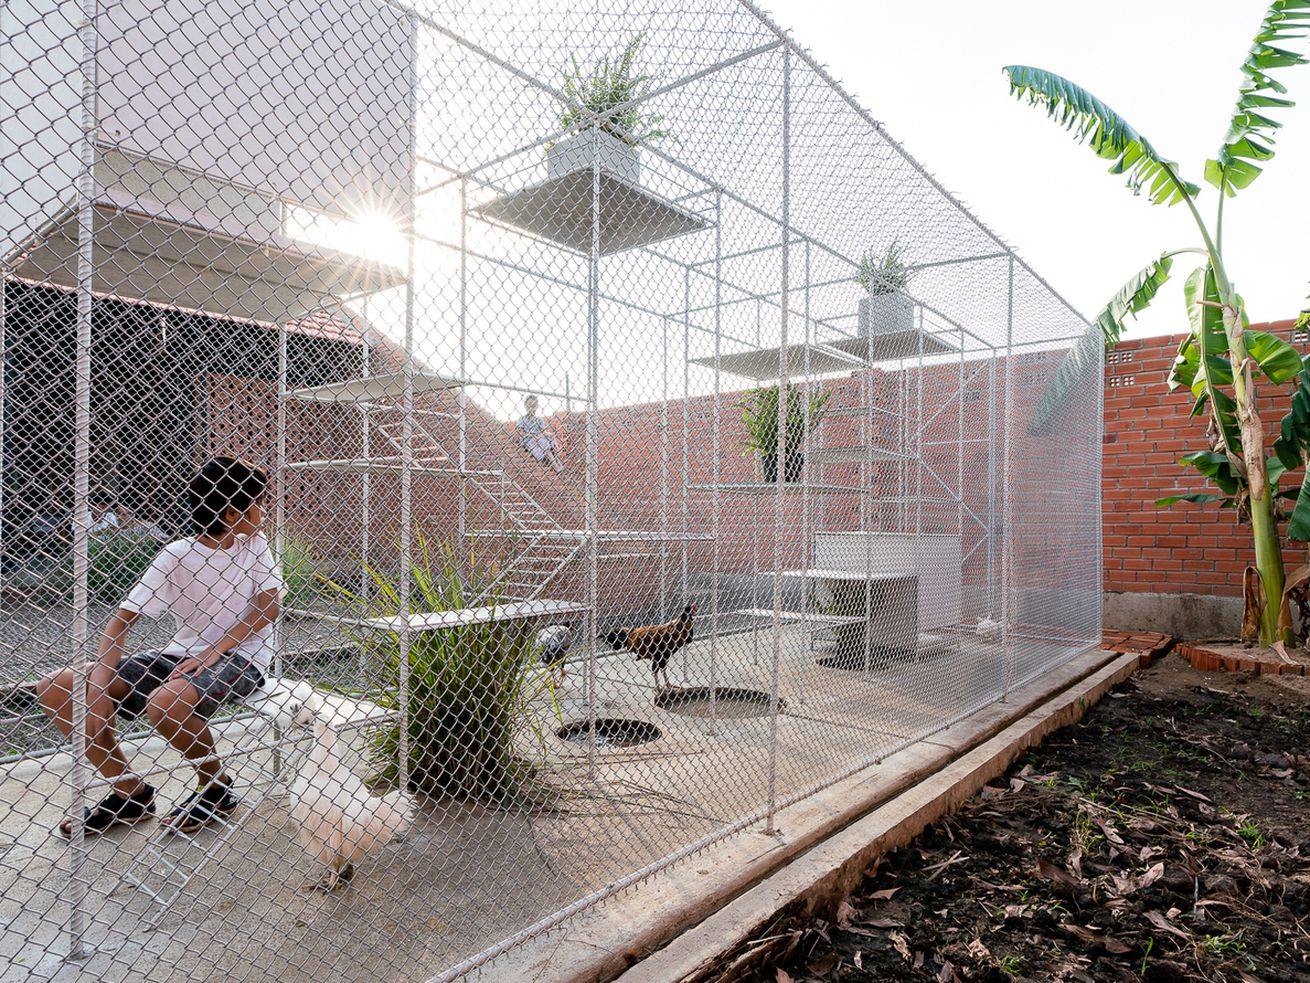 Fancy chicken coop pulls double duty as a jungle gym